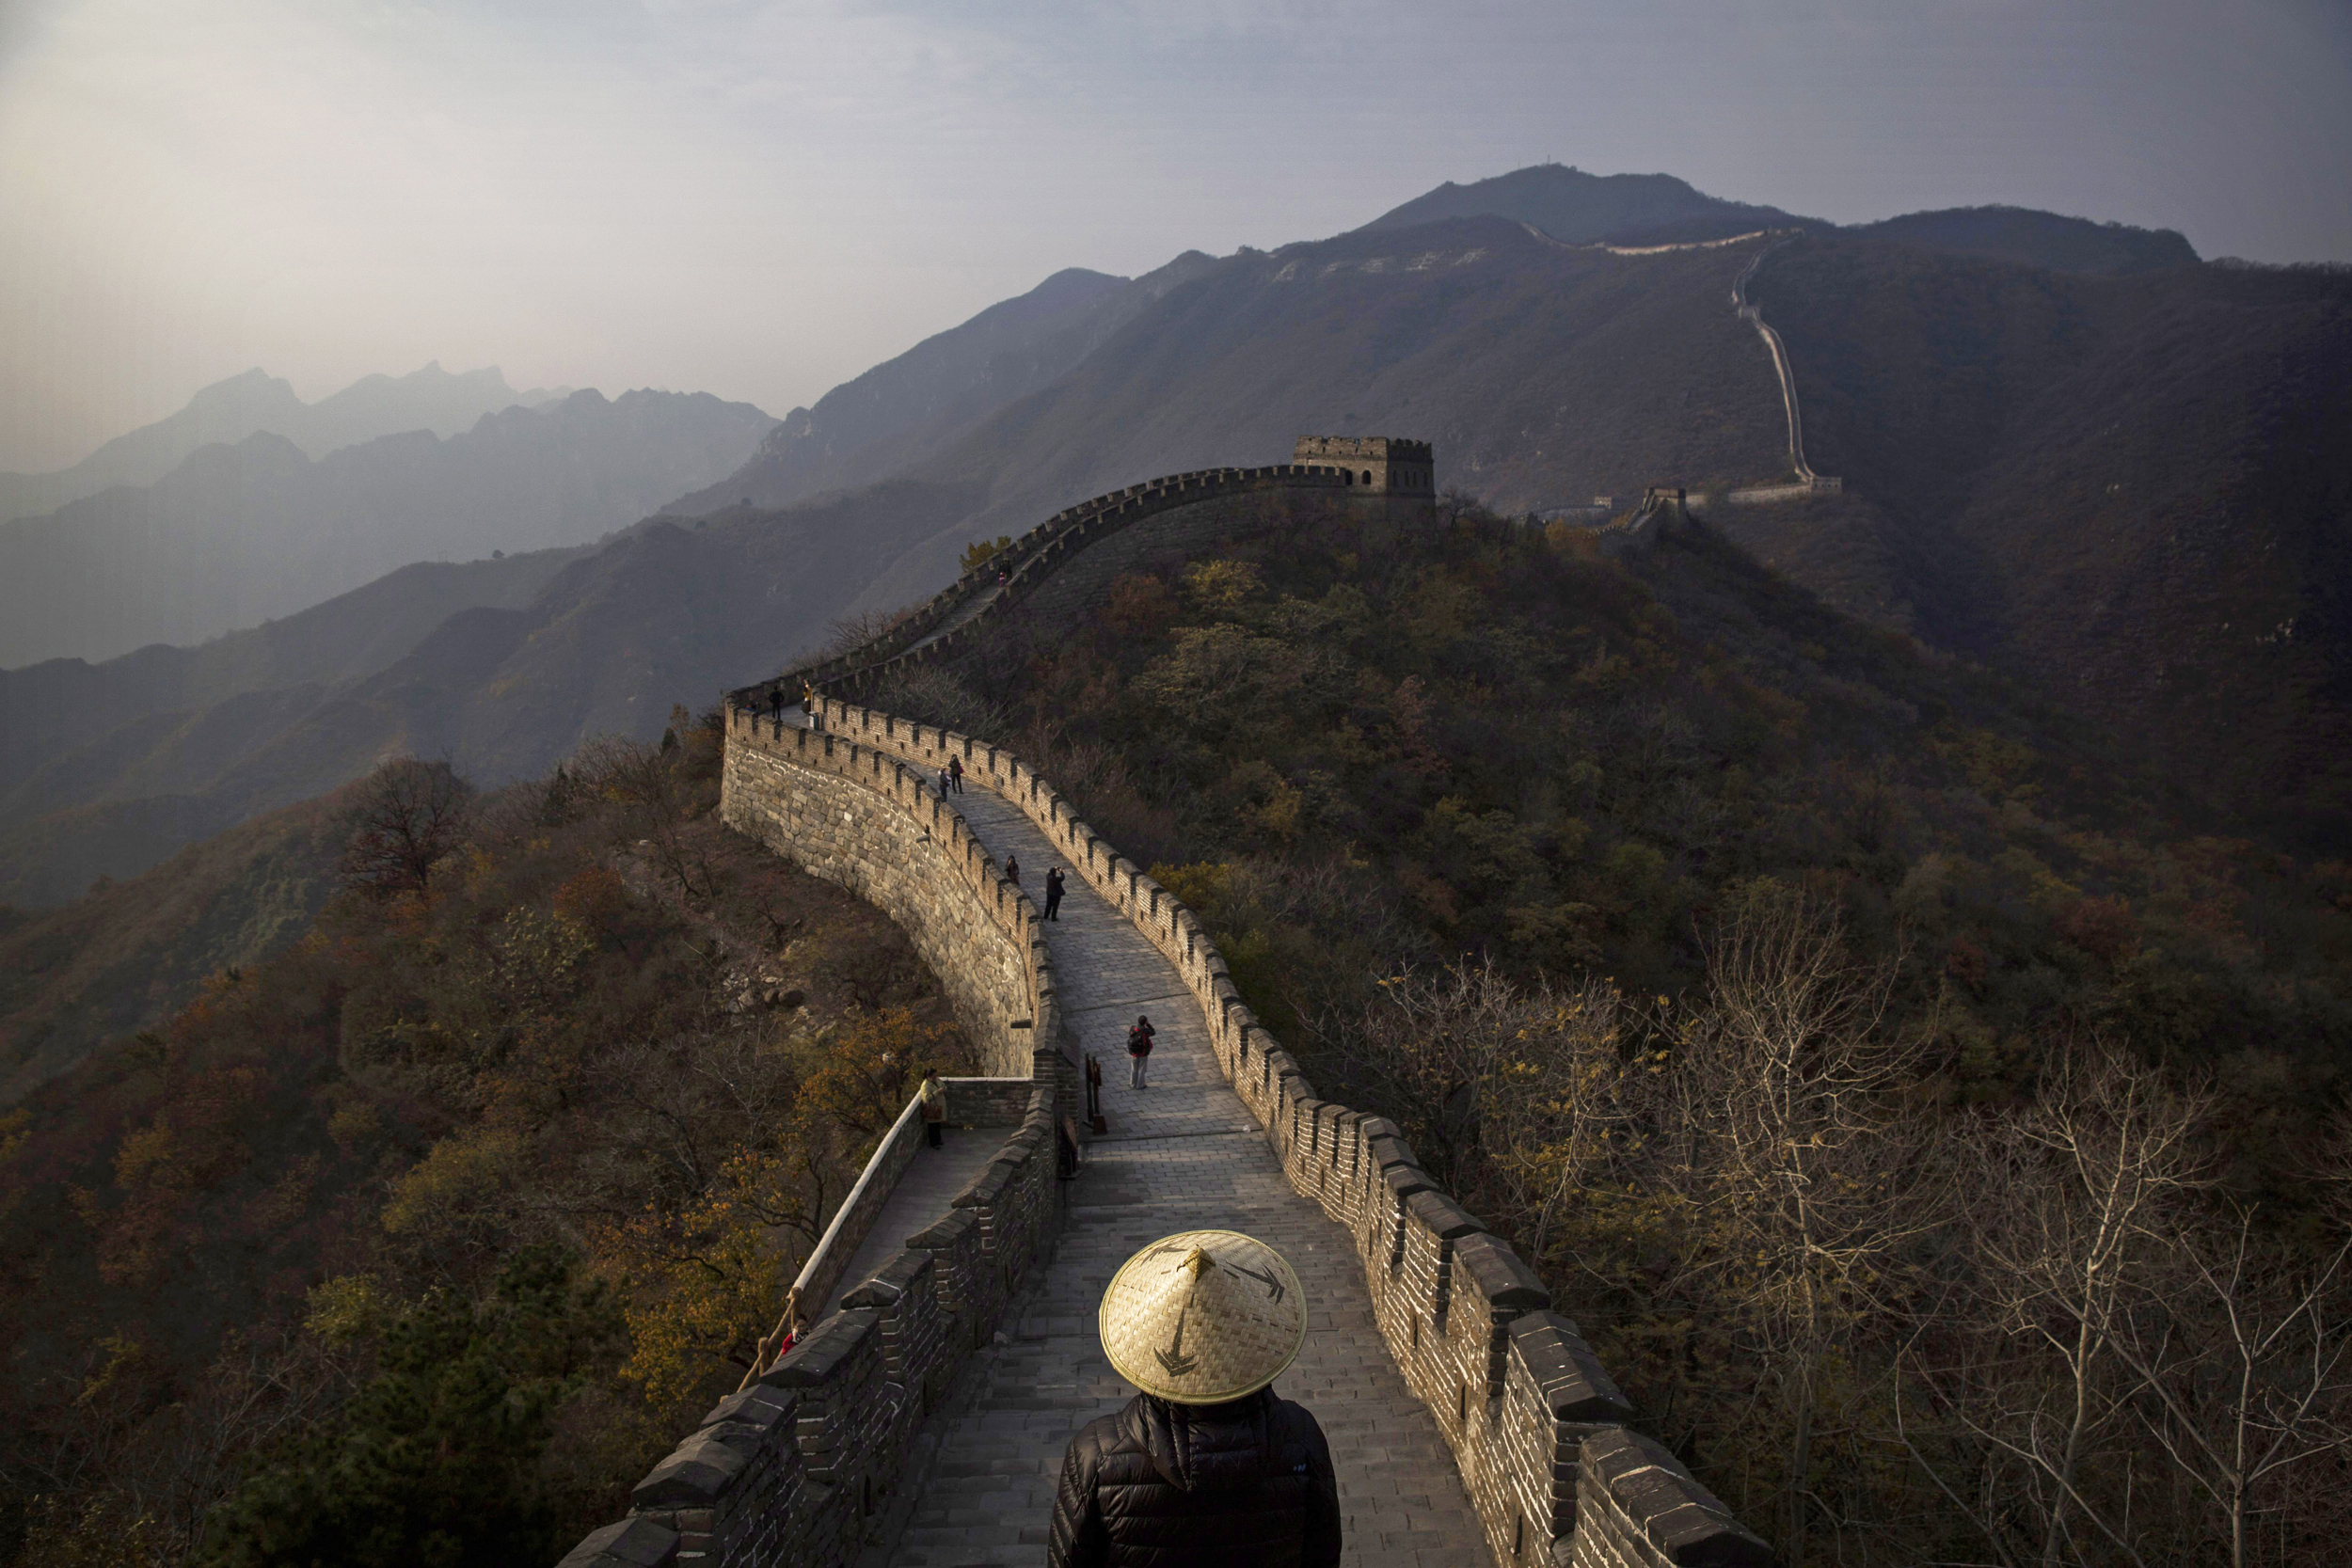 China s Great Wall 30 Percent of UNESCO World Heritage Site Gone